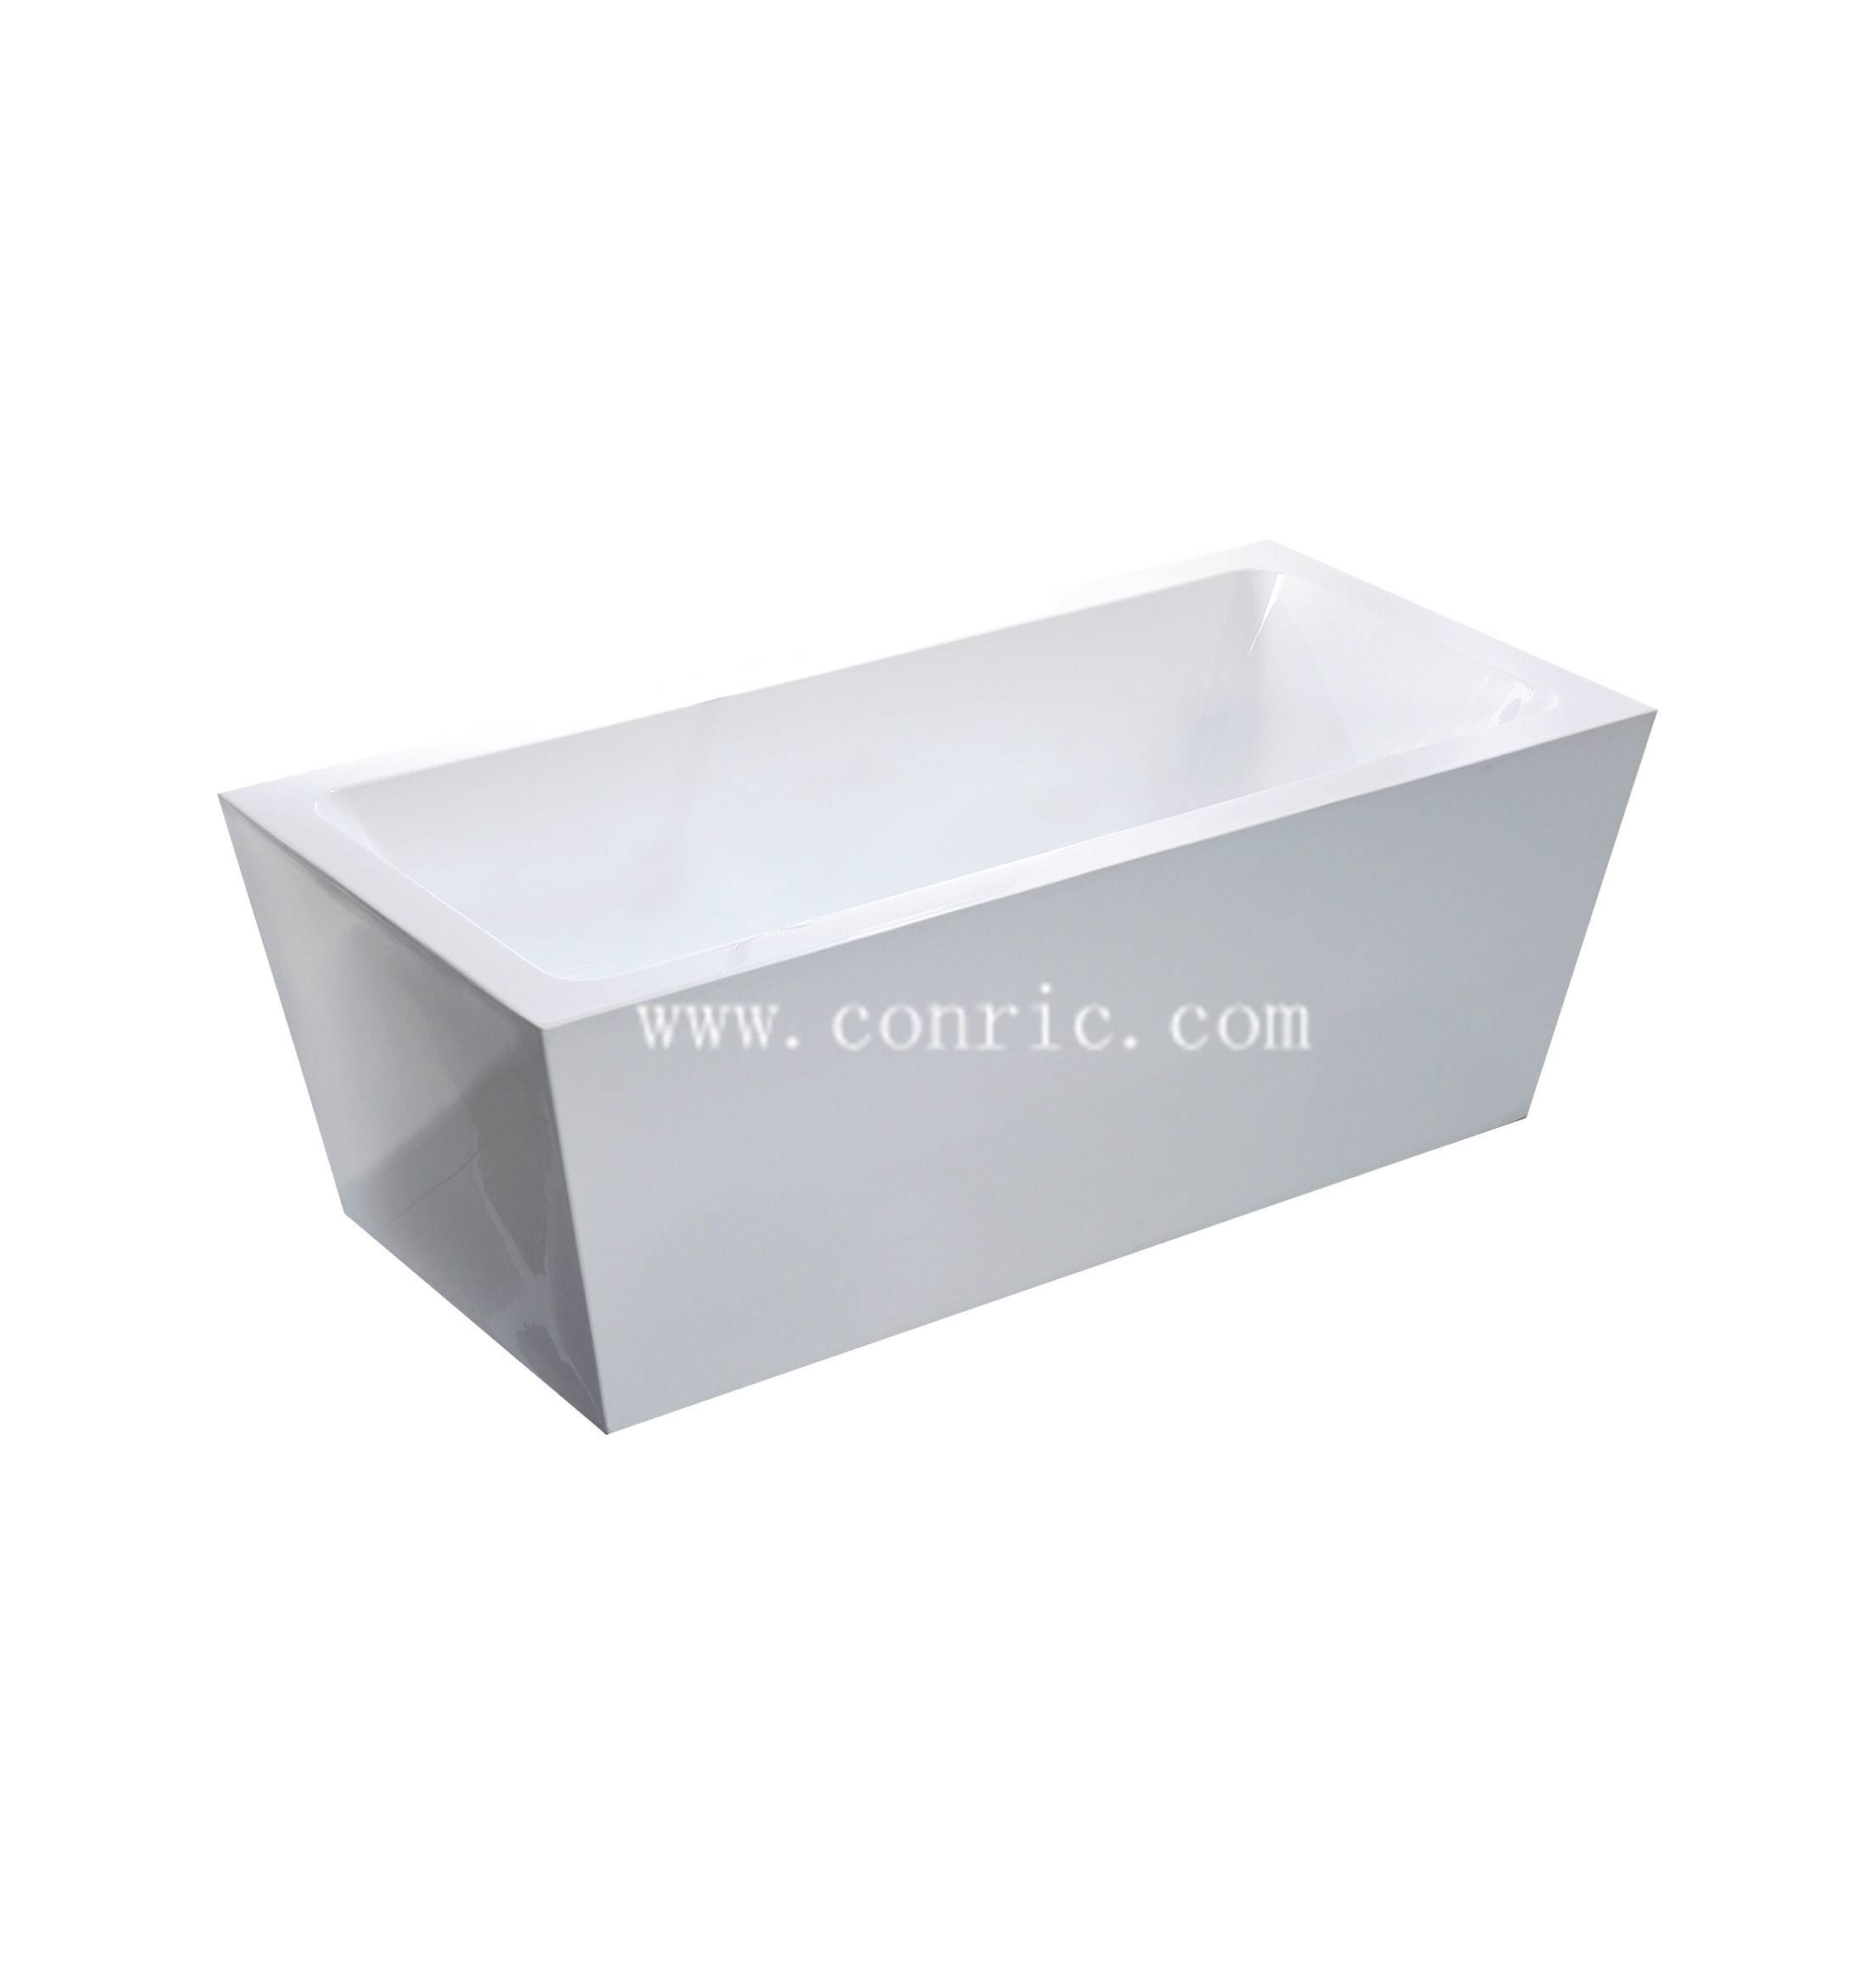 Chinese Rectangle Portable Acrylic Freestanding Bathtub